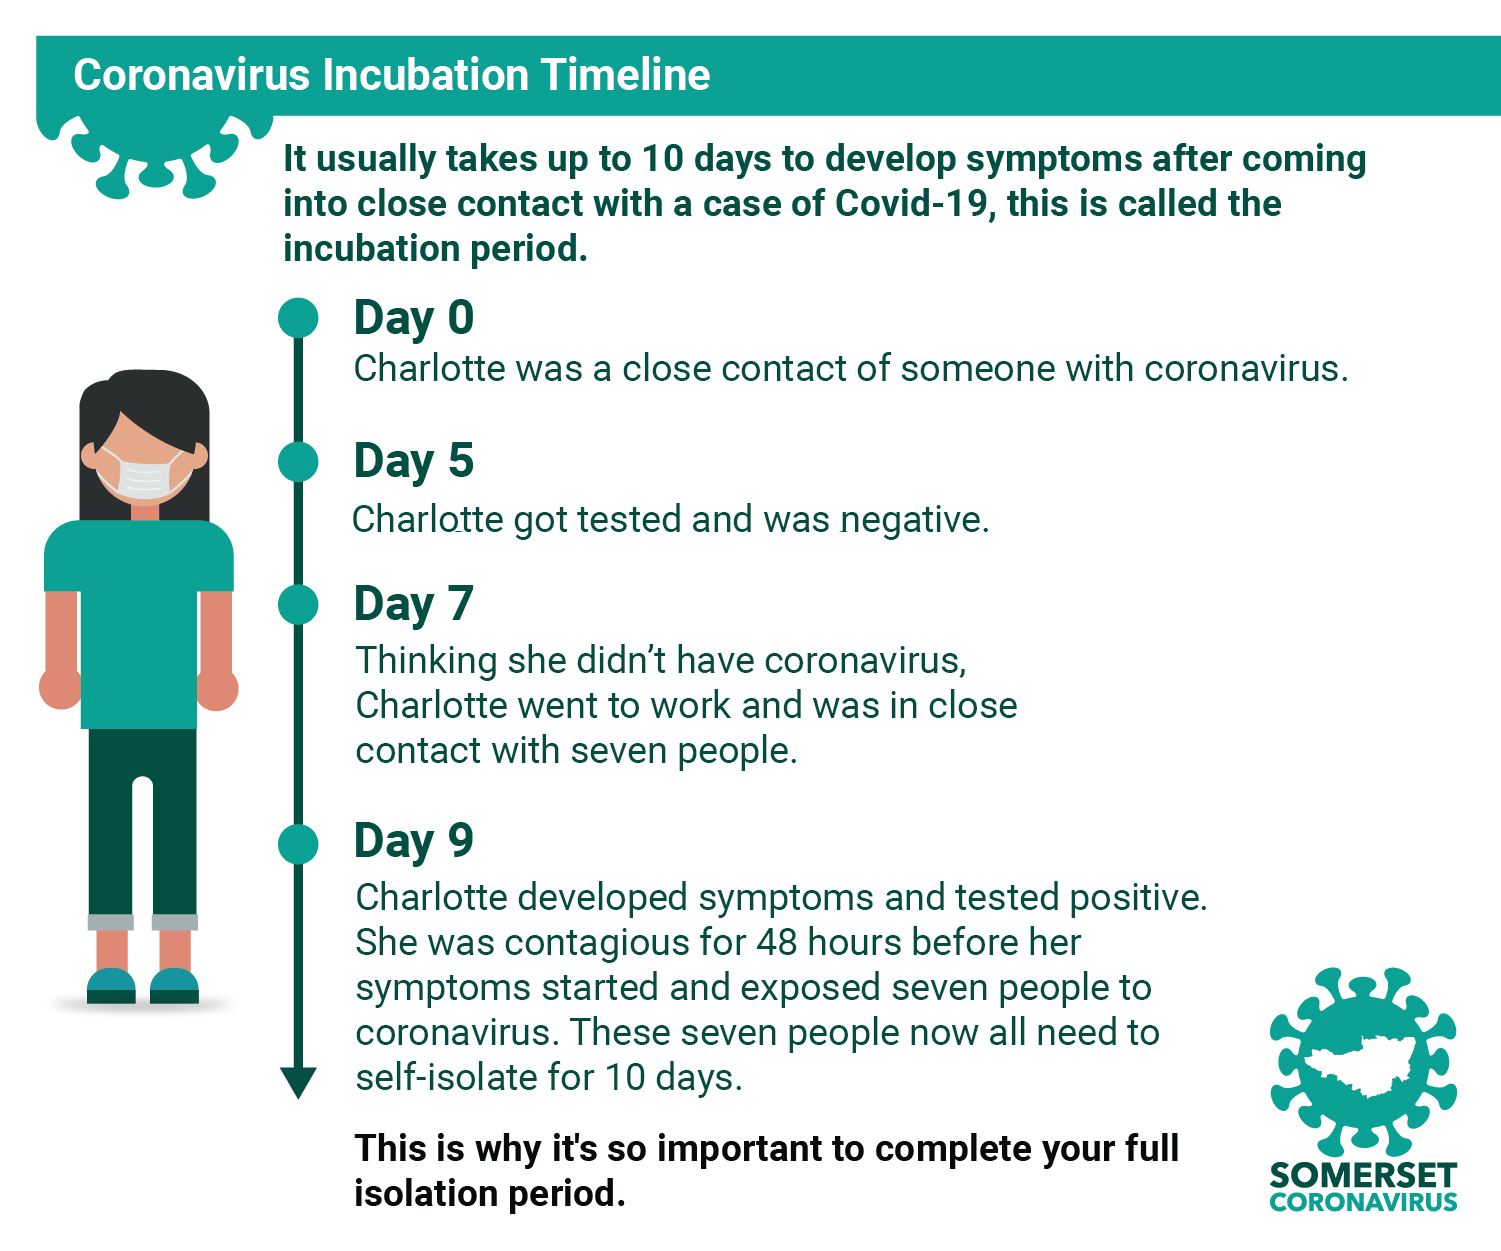 This image describes a typical coronavirus incubation timeline